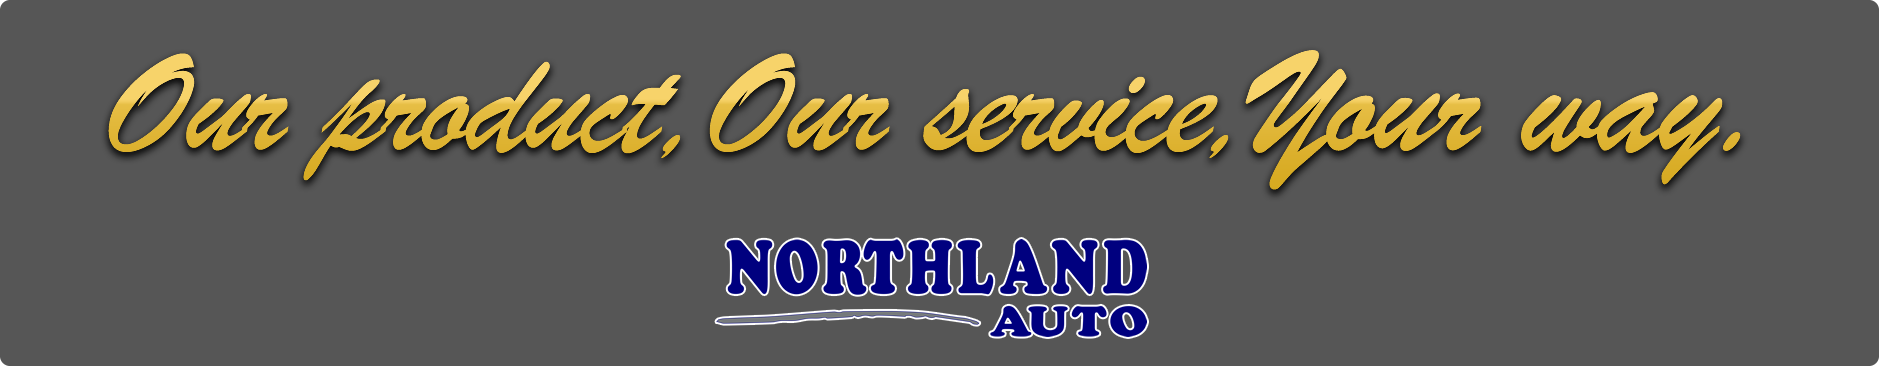 Our product, our service, your way slogan